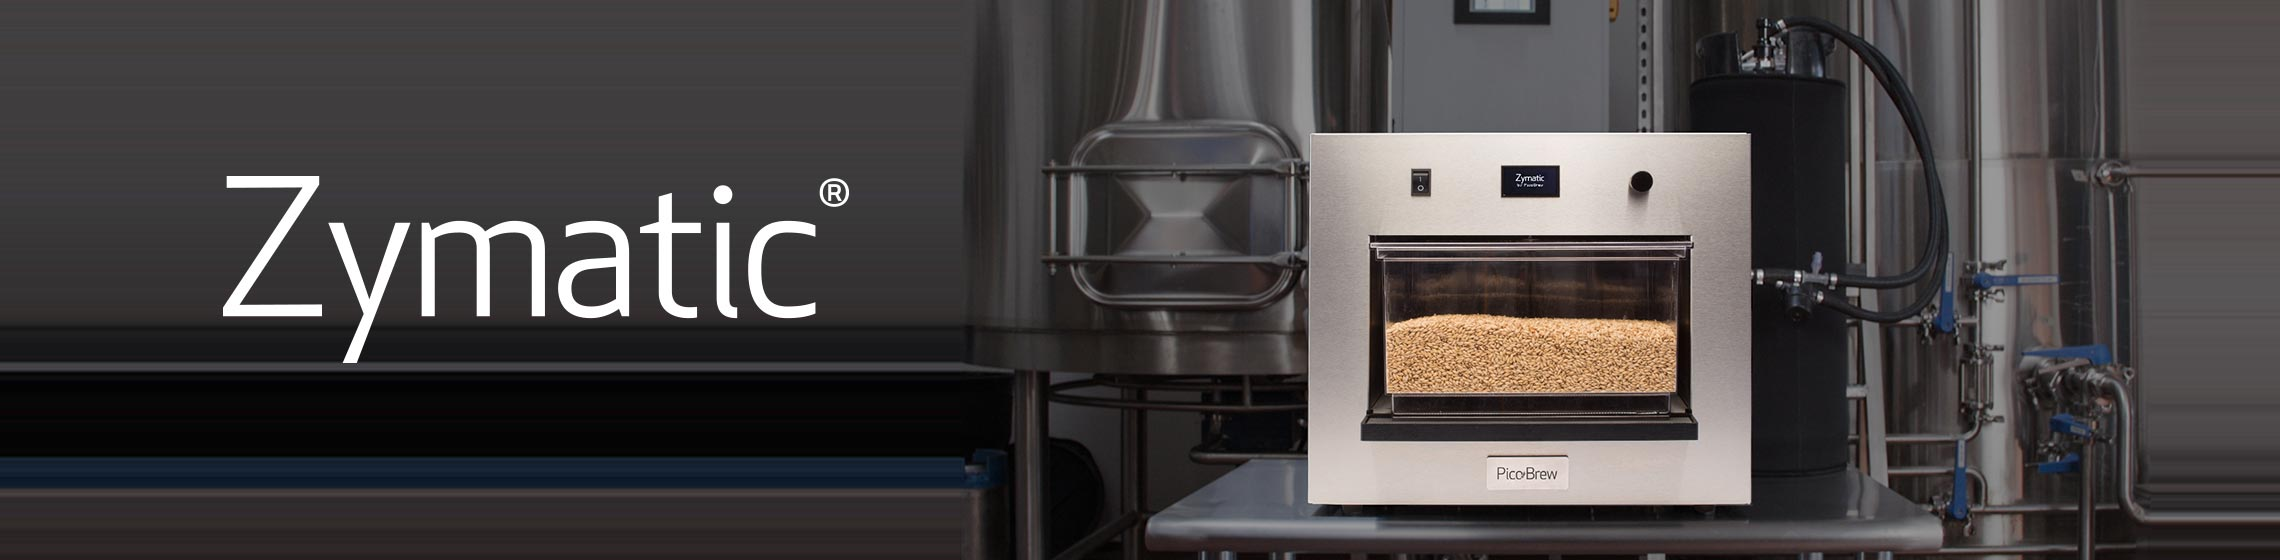 PicoBrew Zymatic brewing appliance pictured in brewery